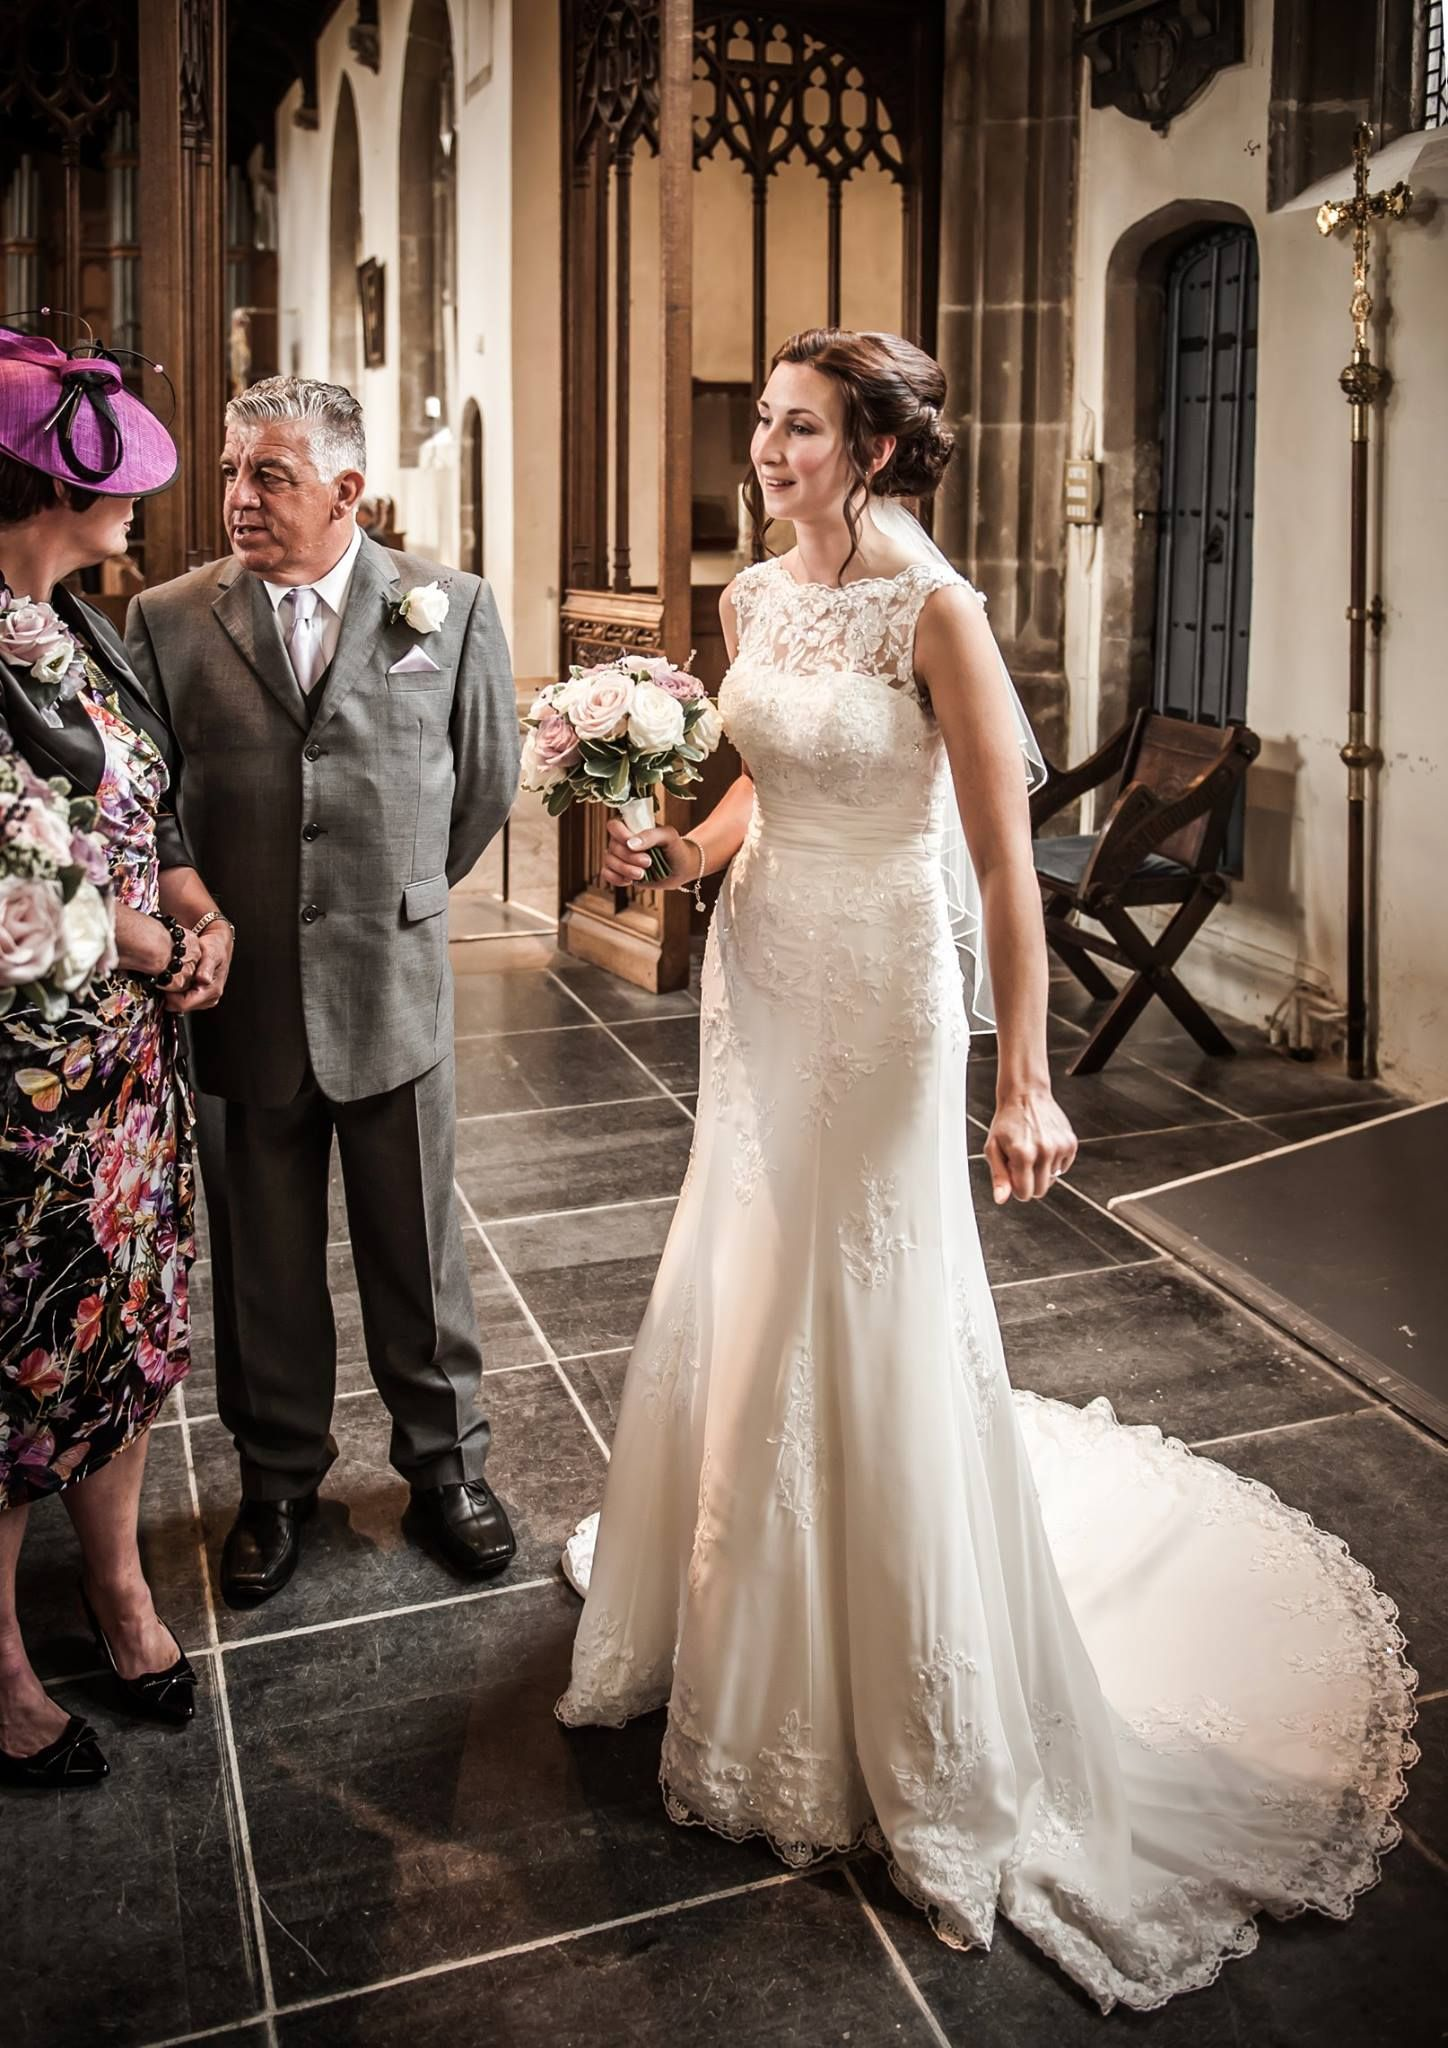 Ray Lockyer Yeovil Wedding Photographer - Our Bride waits as the ...